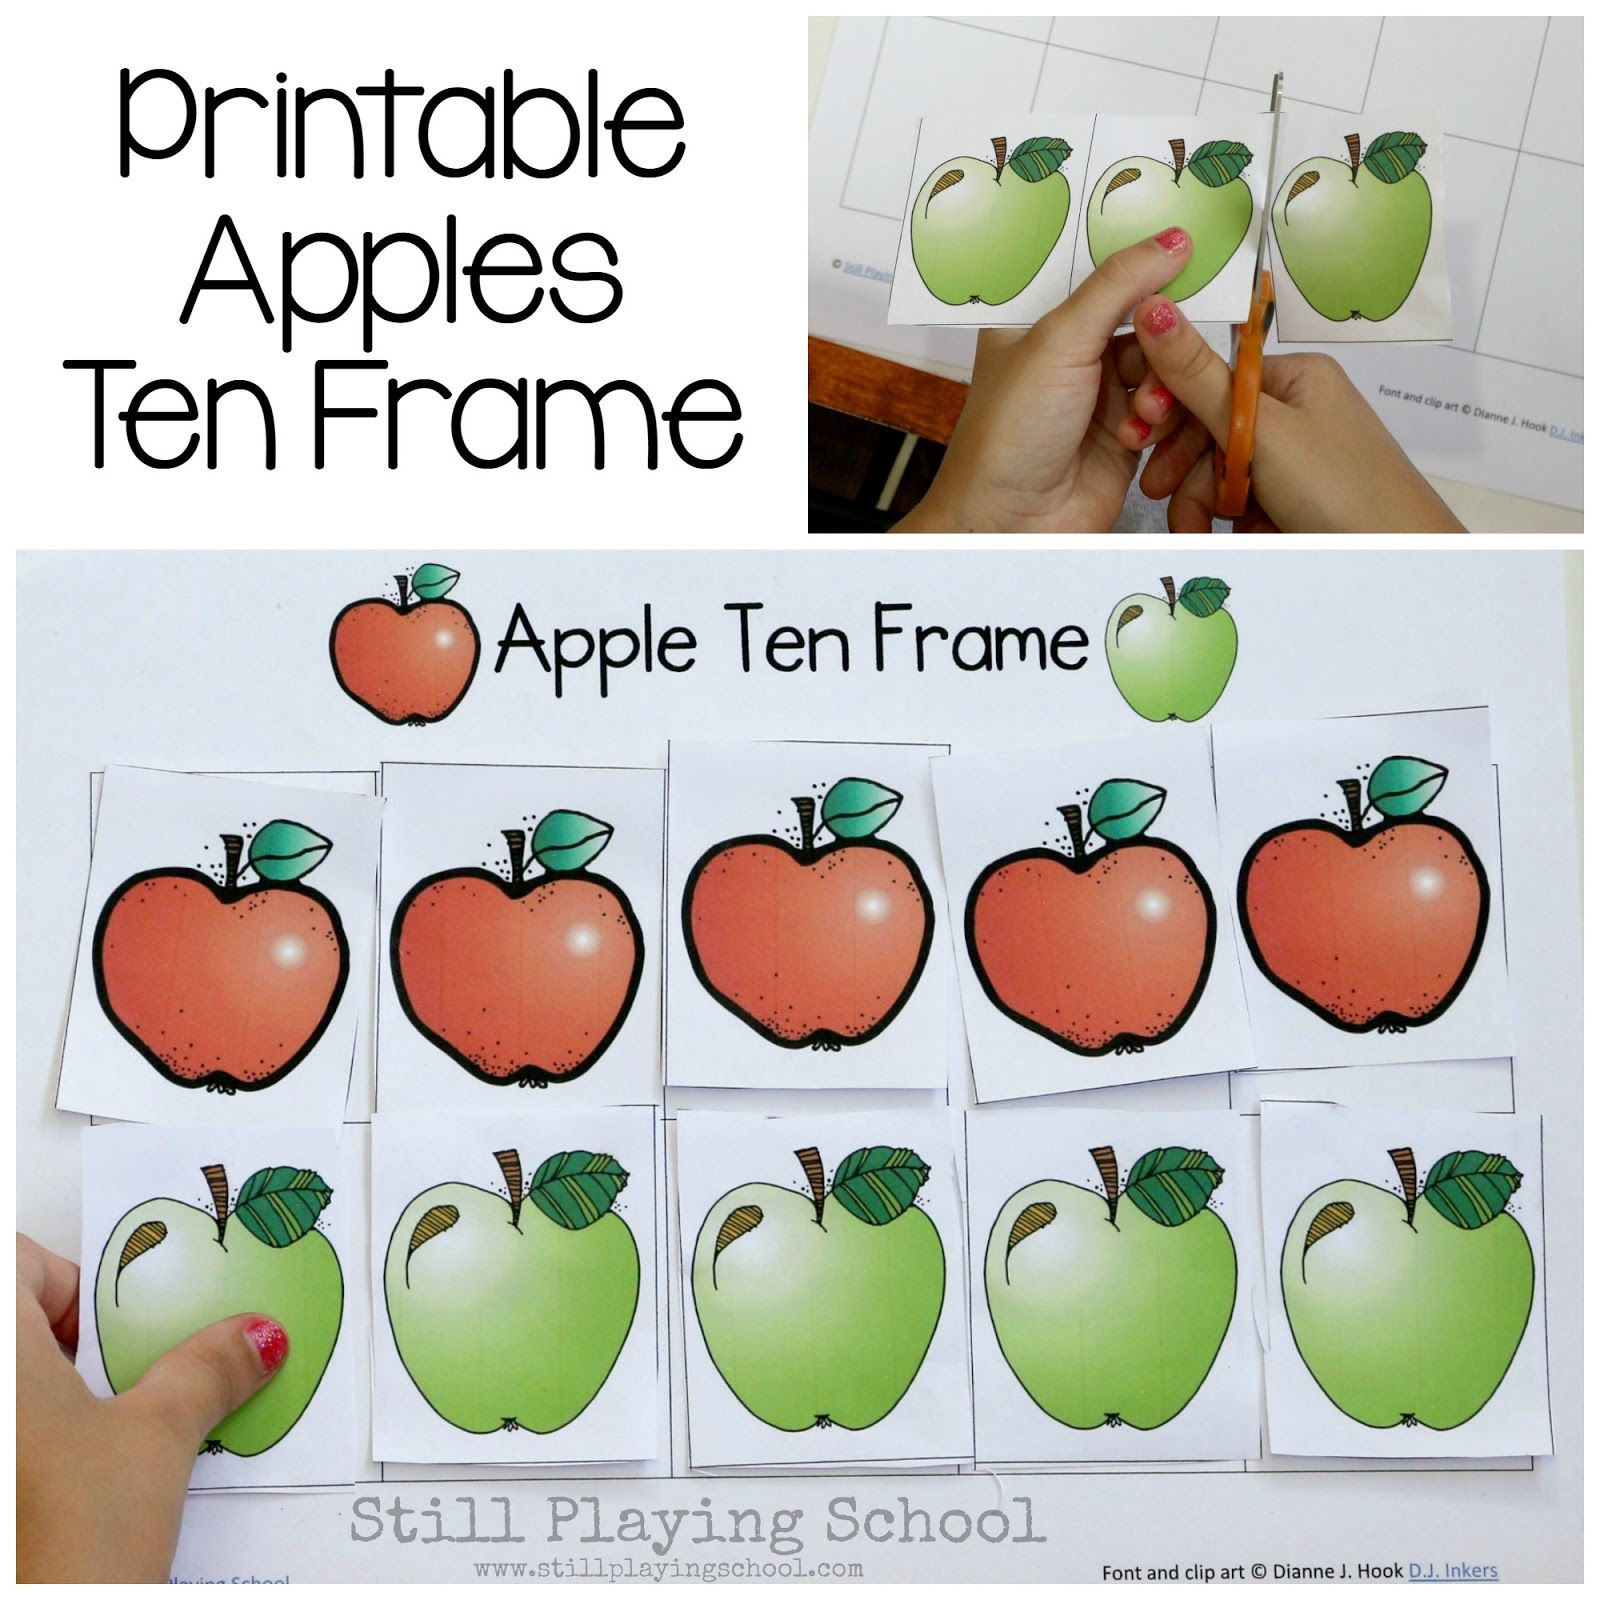 Fall is the perfect time of year for an apple theme! We're offering this free printable hands on math activity for kids to learn about ten...